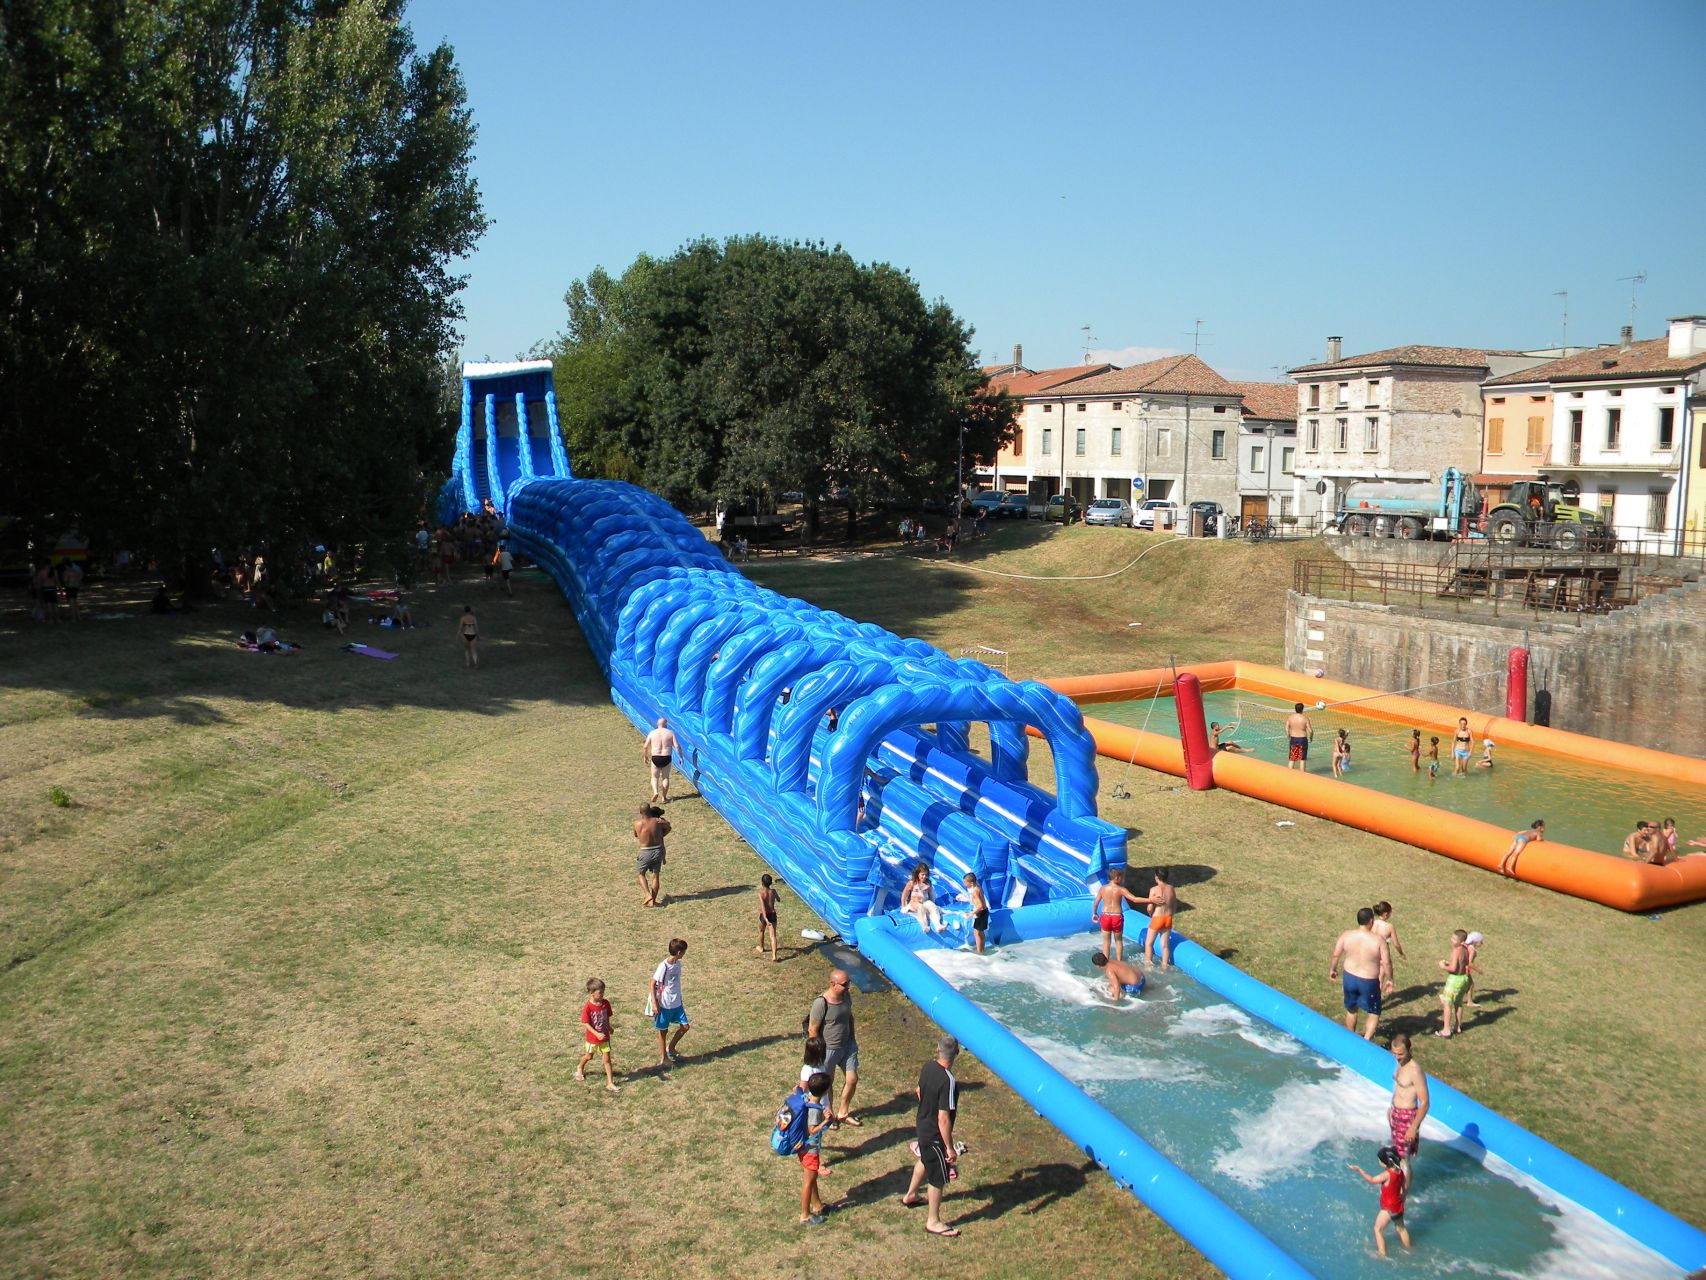 Slide The City - 10.JPG